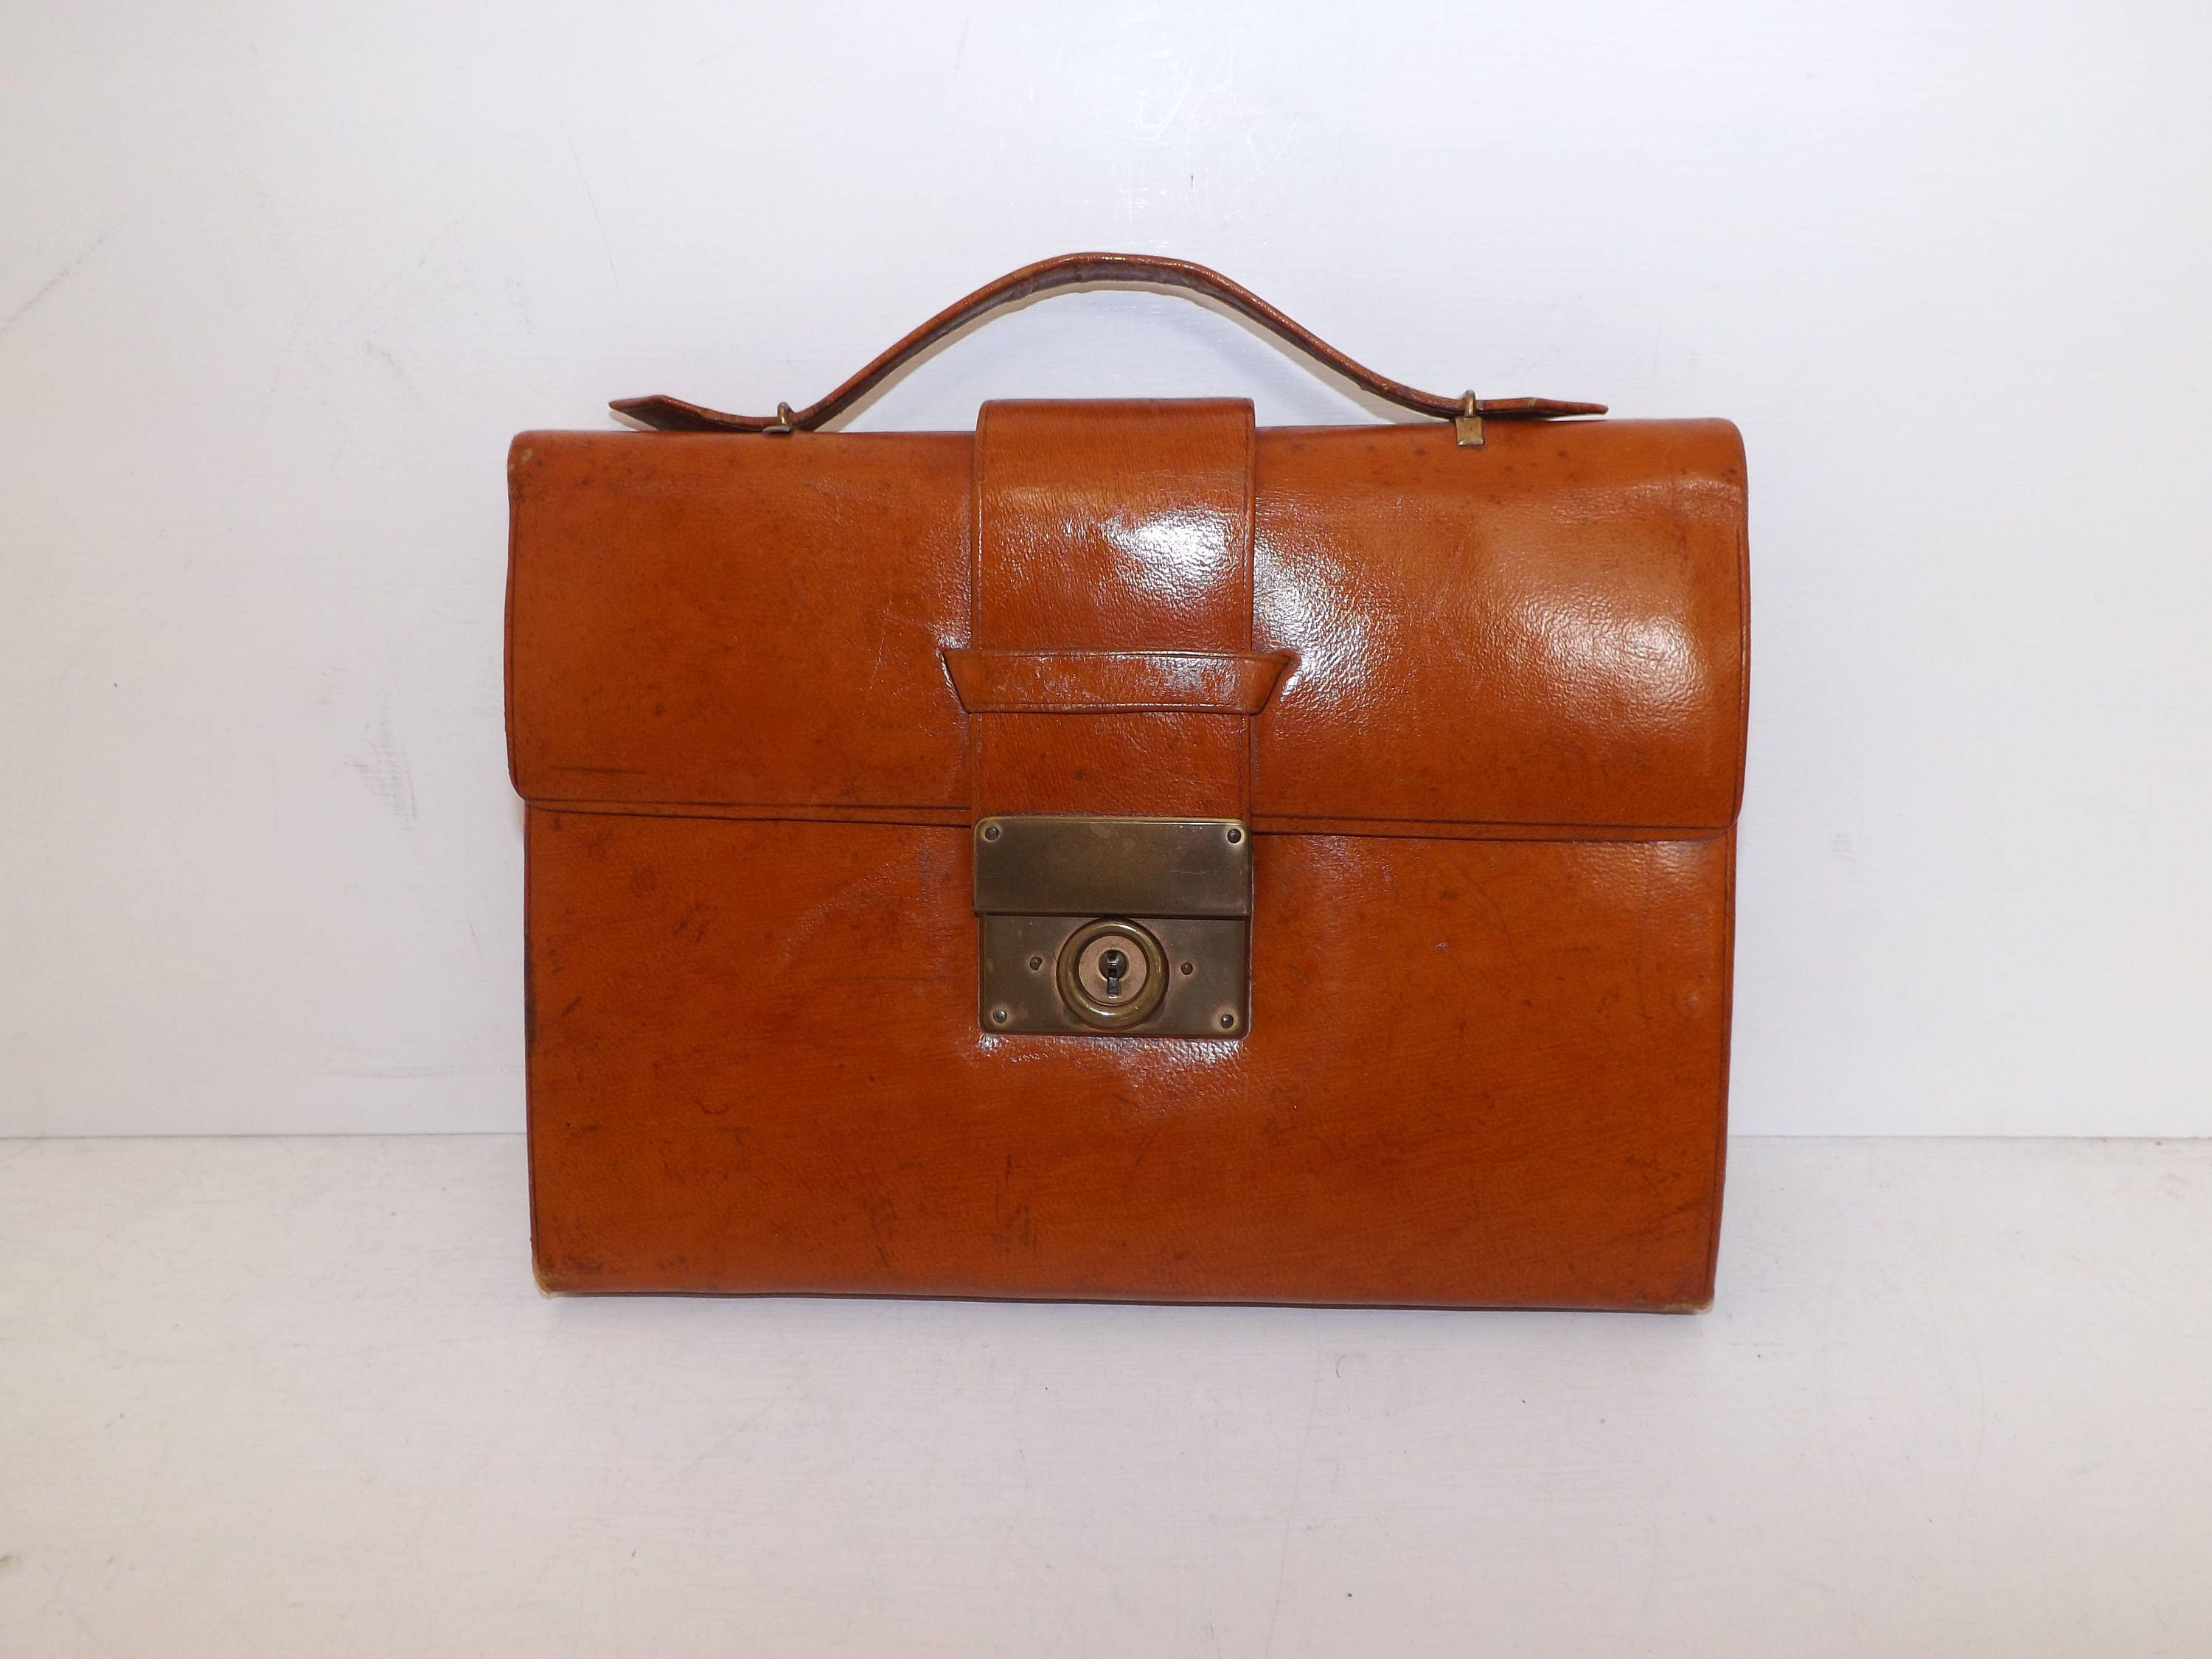 Vintage 1940s tan brown leather document case bag writing set documents carrier purple lining